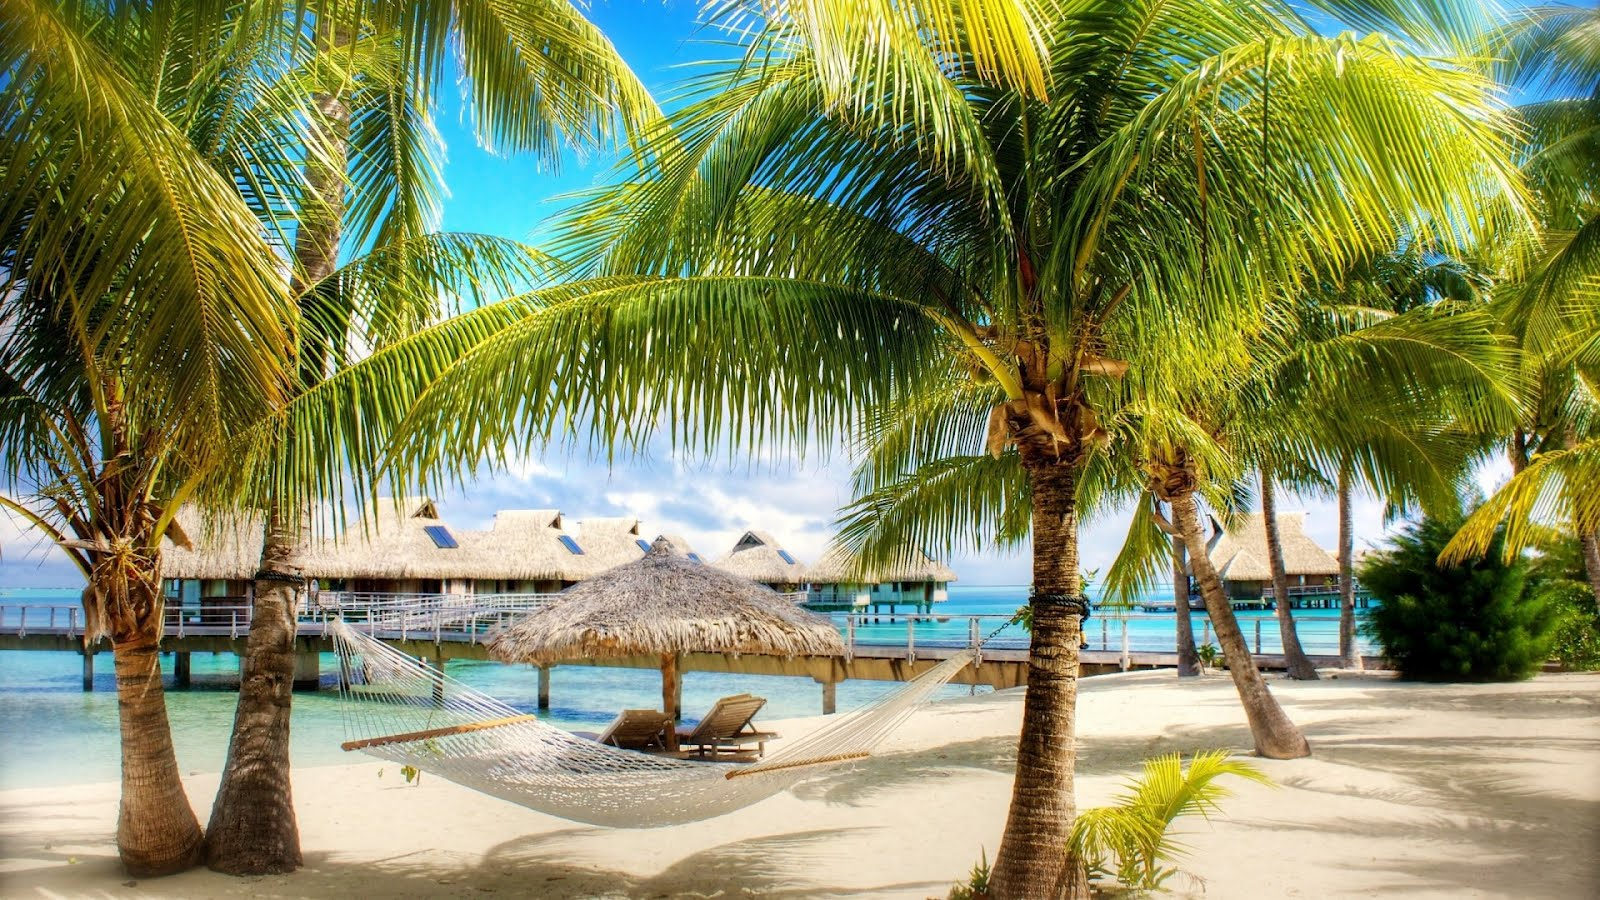 Tropical Beach Paradise Wallpaper Hd Desktop Wallpaper 1600x900